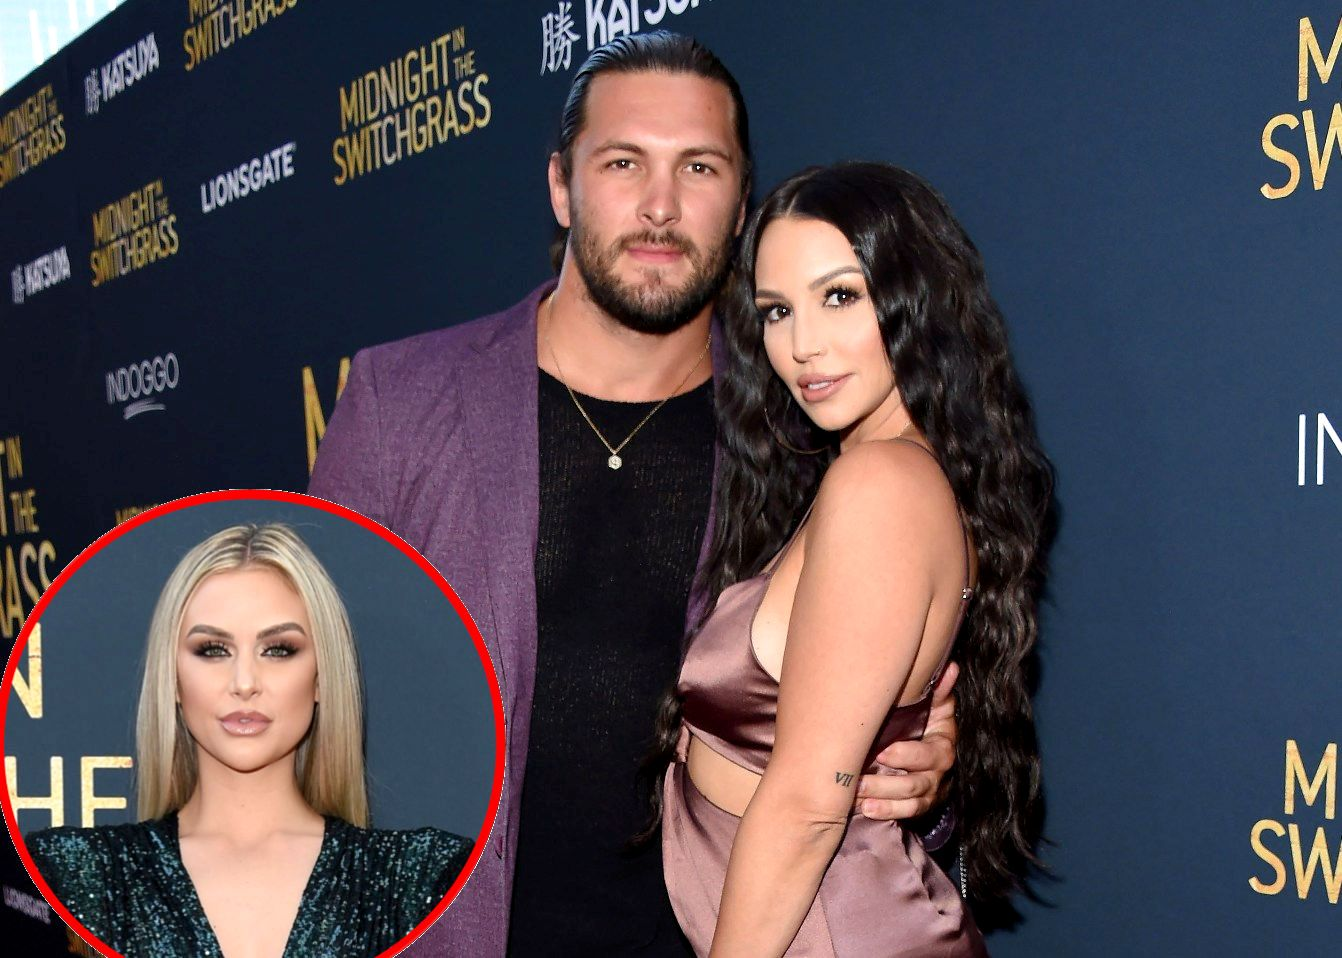 """Source Shares Why Scheana's Fiancé Brock Davies' Relationship With His Kids is a """"Complicated Family Matter"""" After Lala Kent Says He Hasn't Spoken to Them in 4 Years in Pump Rules Trailer"""